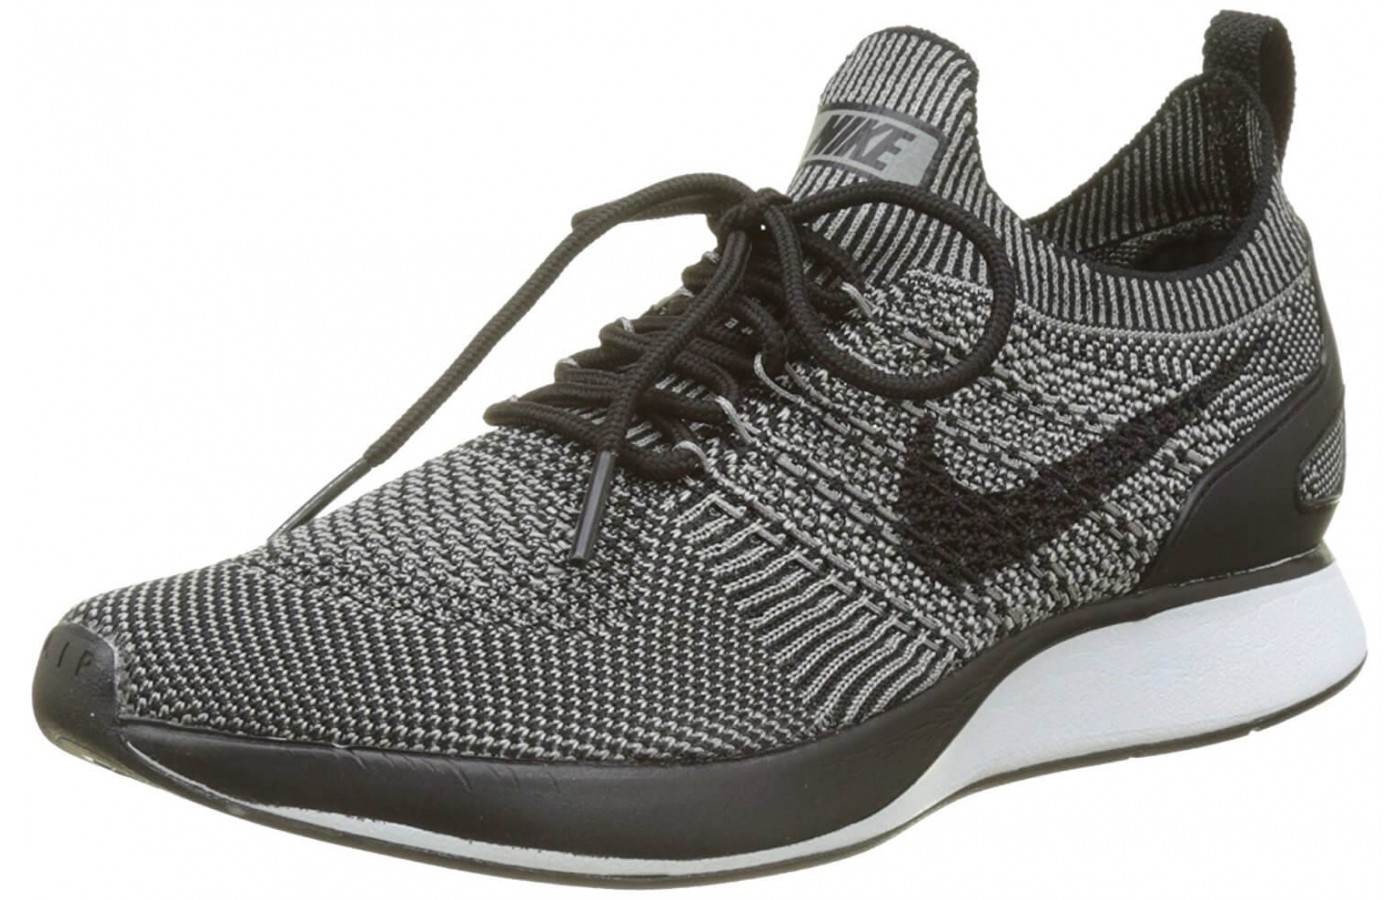 innovative design c1b3a 50dfc ... The Nike Air Zoom Mariah Flyknit Racer can be designed entirely by you!